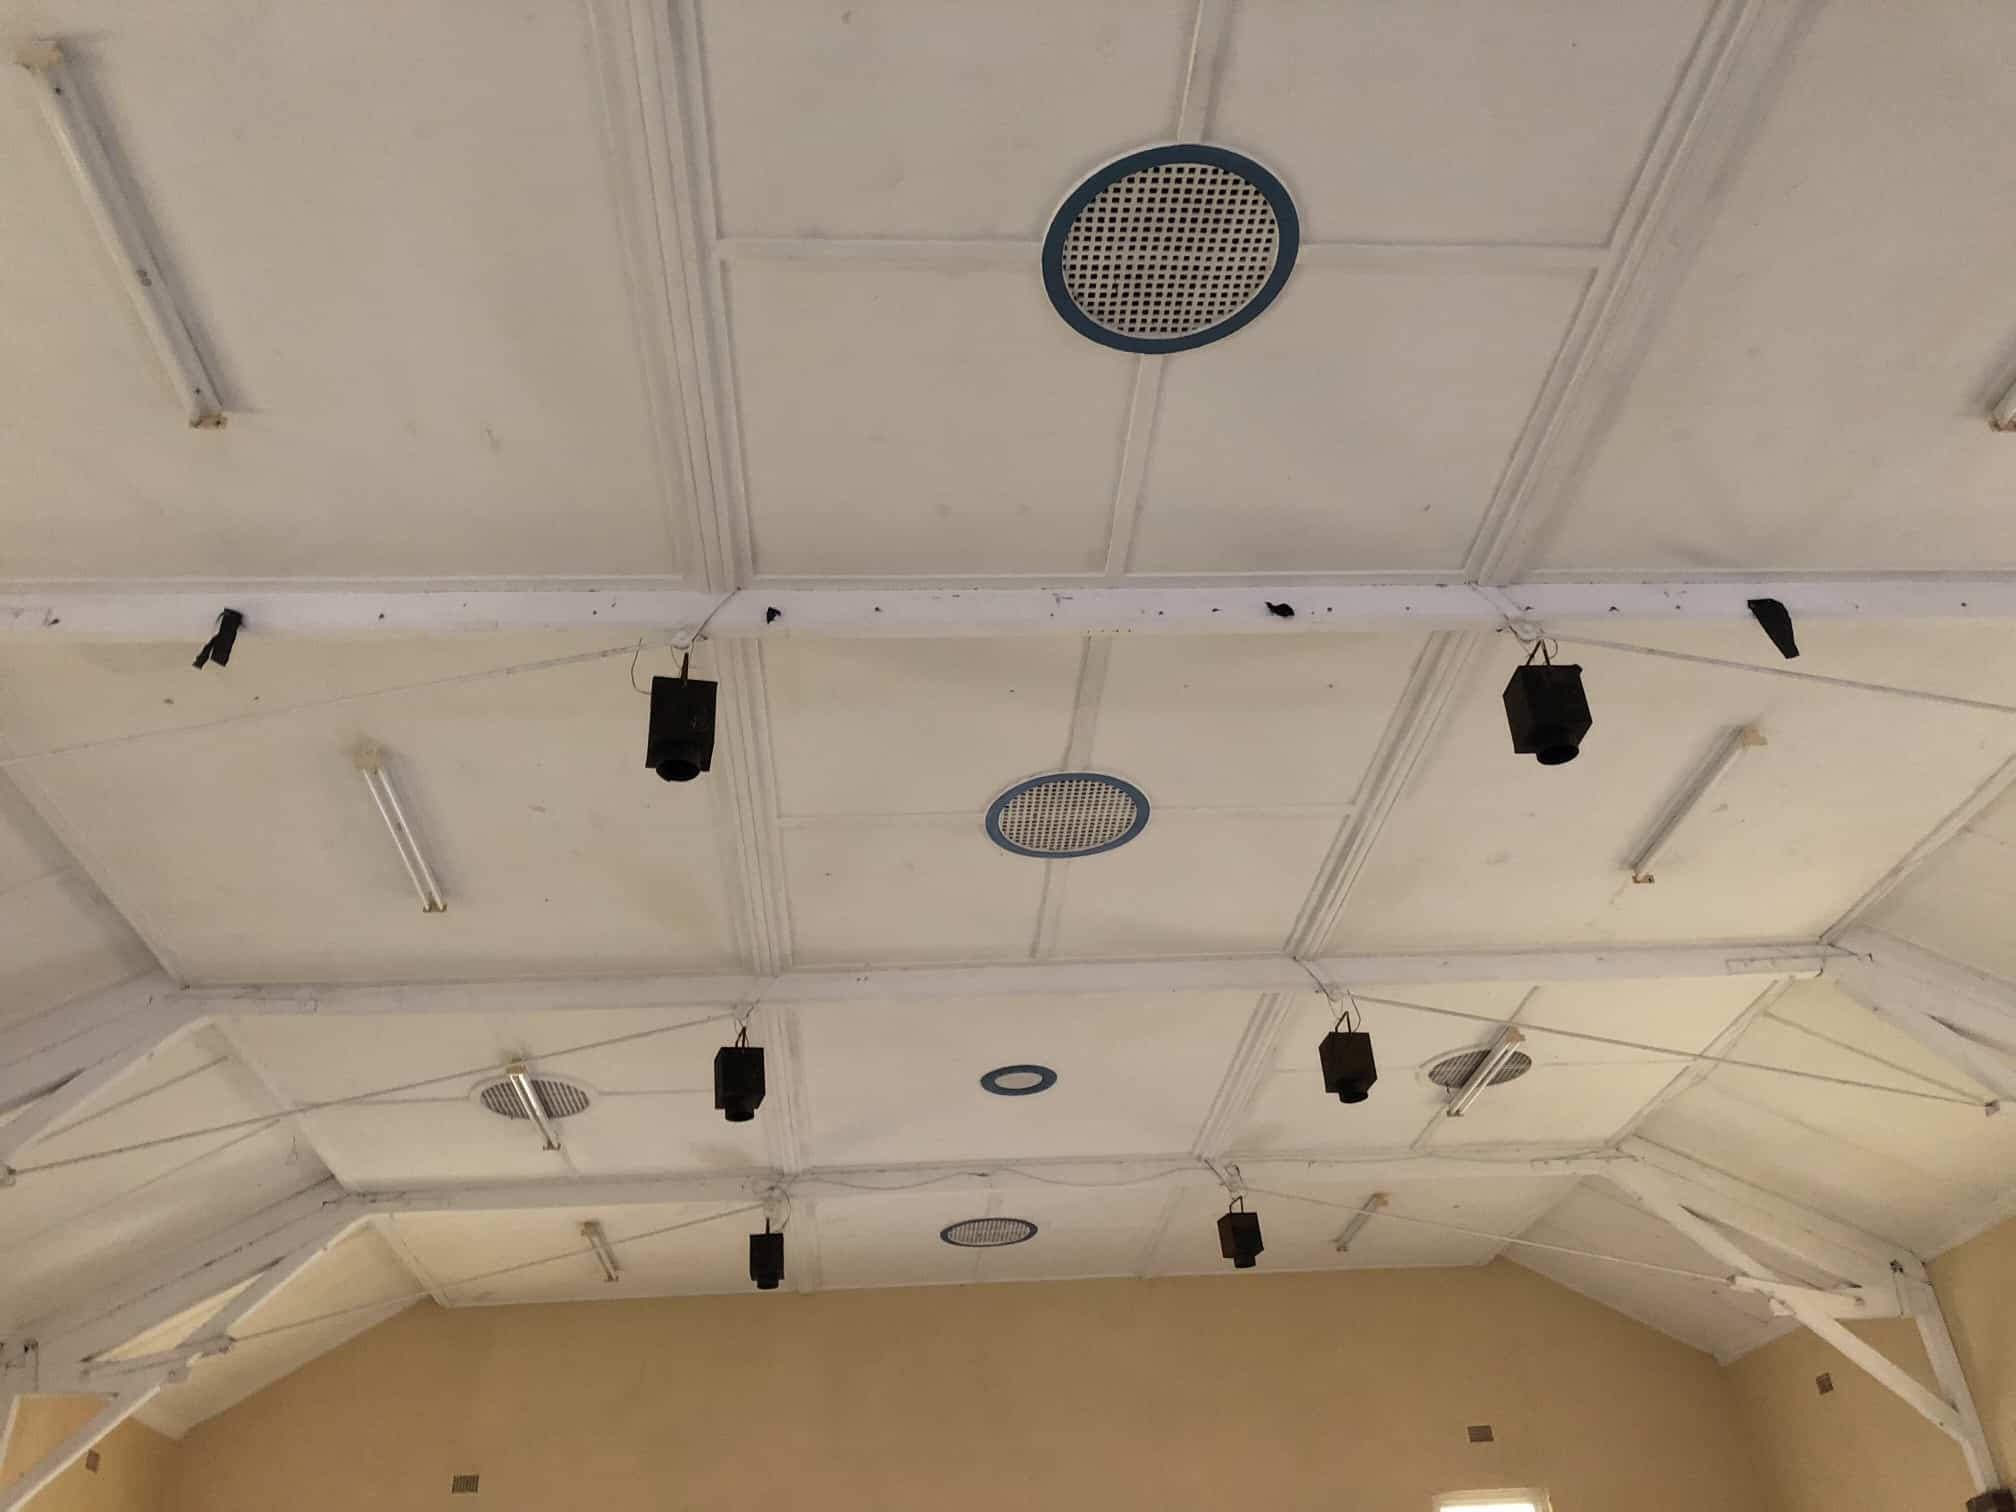 white ceiling with 4 air outlets and a few ceiling lights